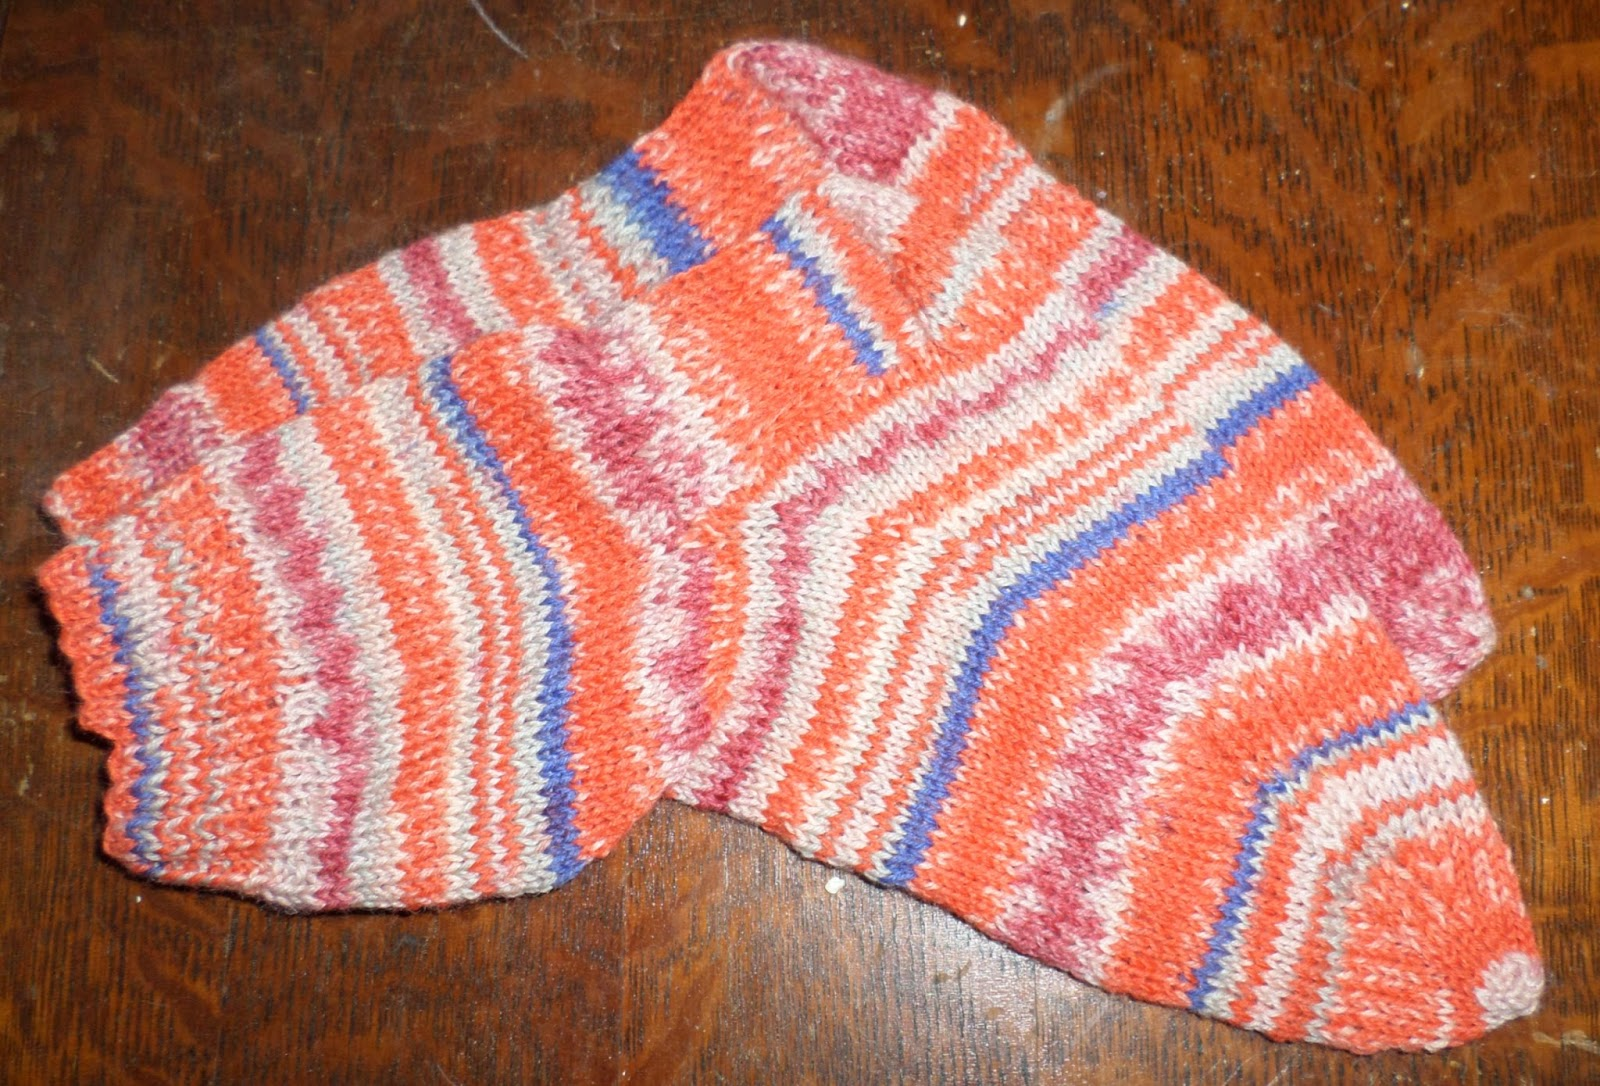 Knitting Socks On Circular Needles Pattern : FUN WITH FIBER: APRIL